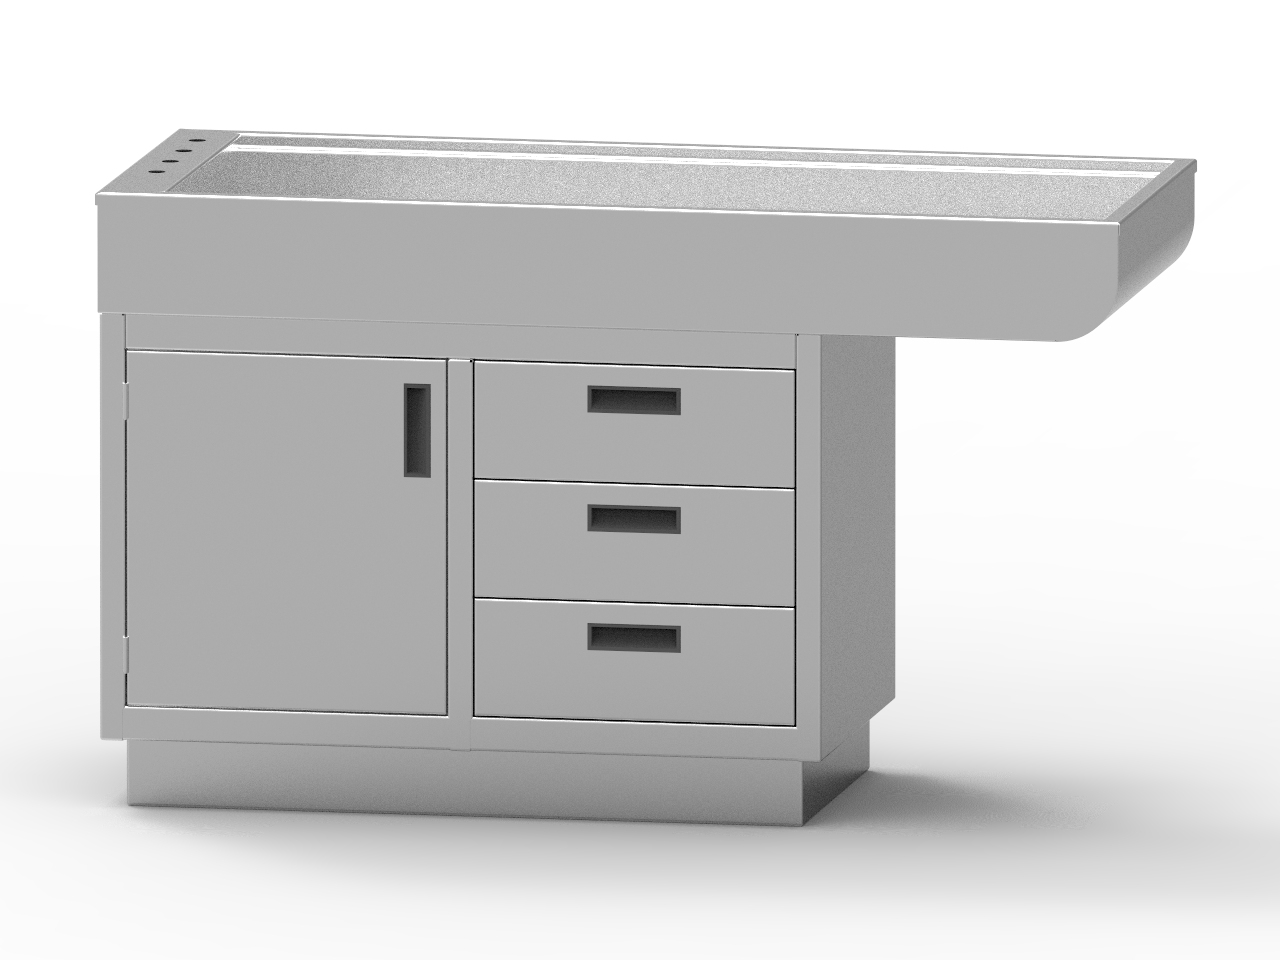 Avante All Stainless Steel Cabinet Style Wet Table with Knee Space (one door, three drawers)